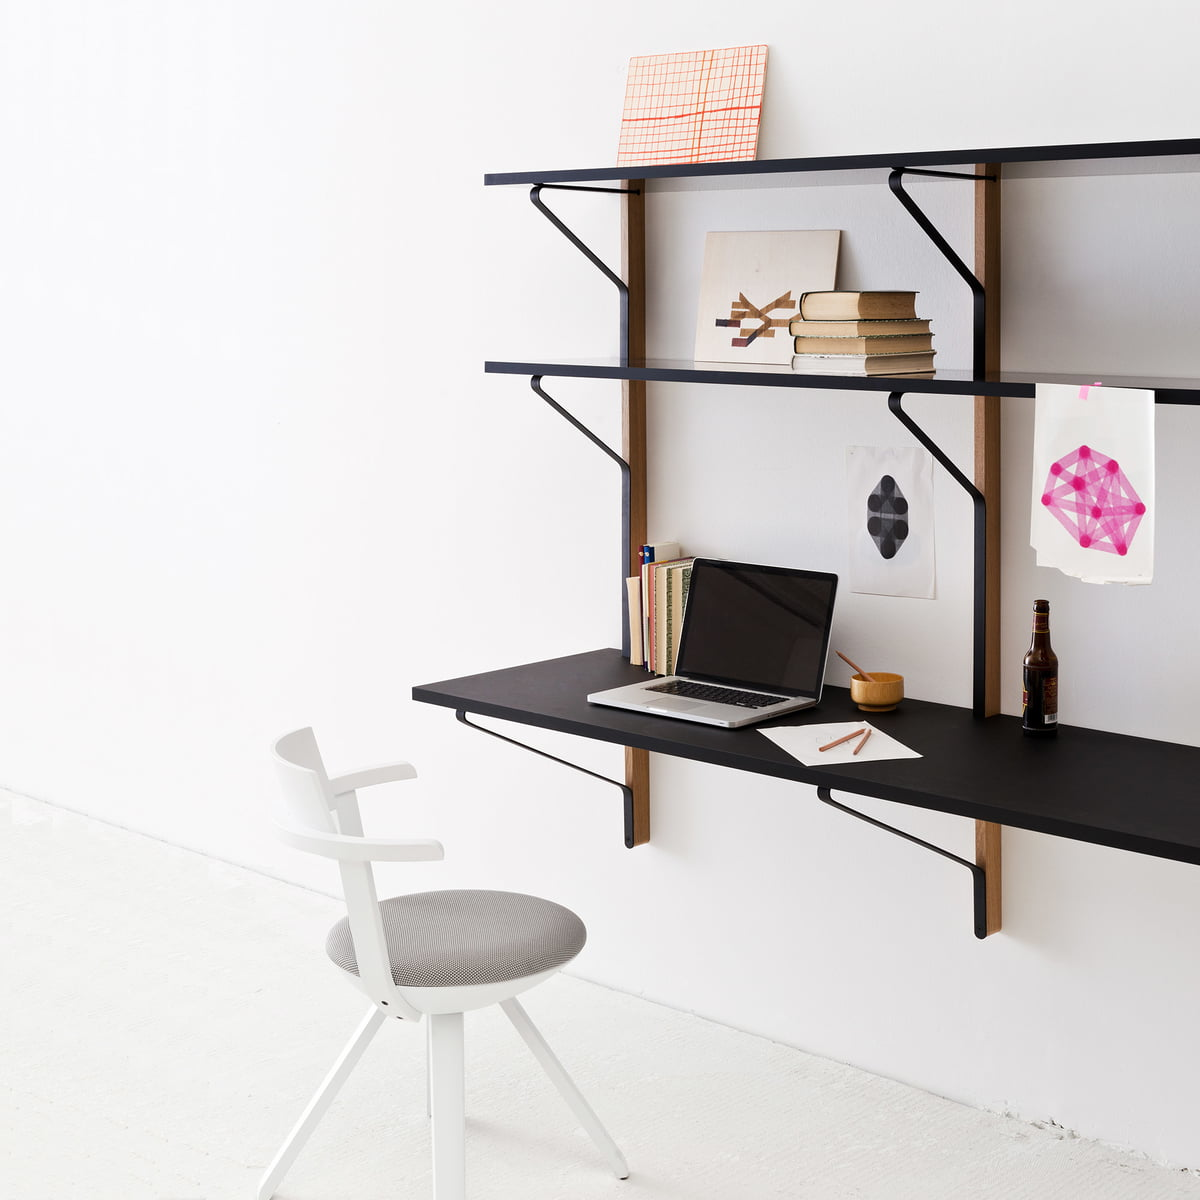 kaari wall shelf with desk by artek. Black Bedroom Furniture Sets. Home Design Ideas